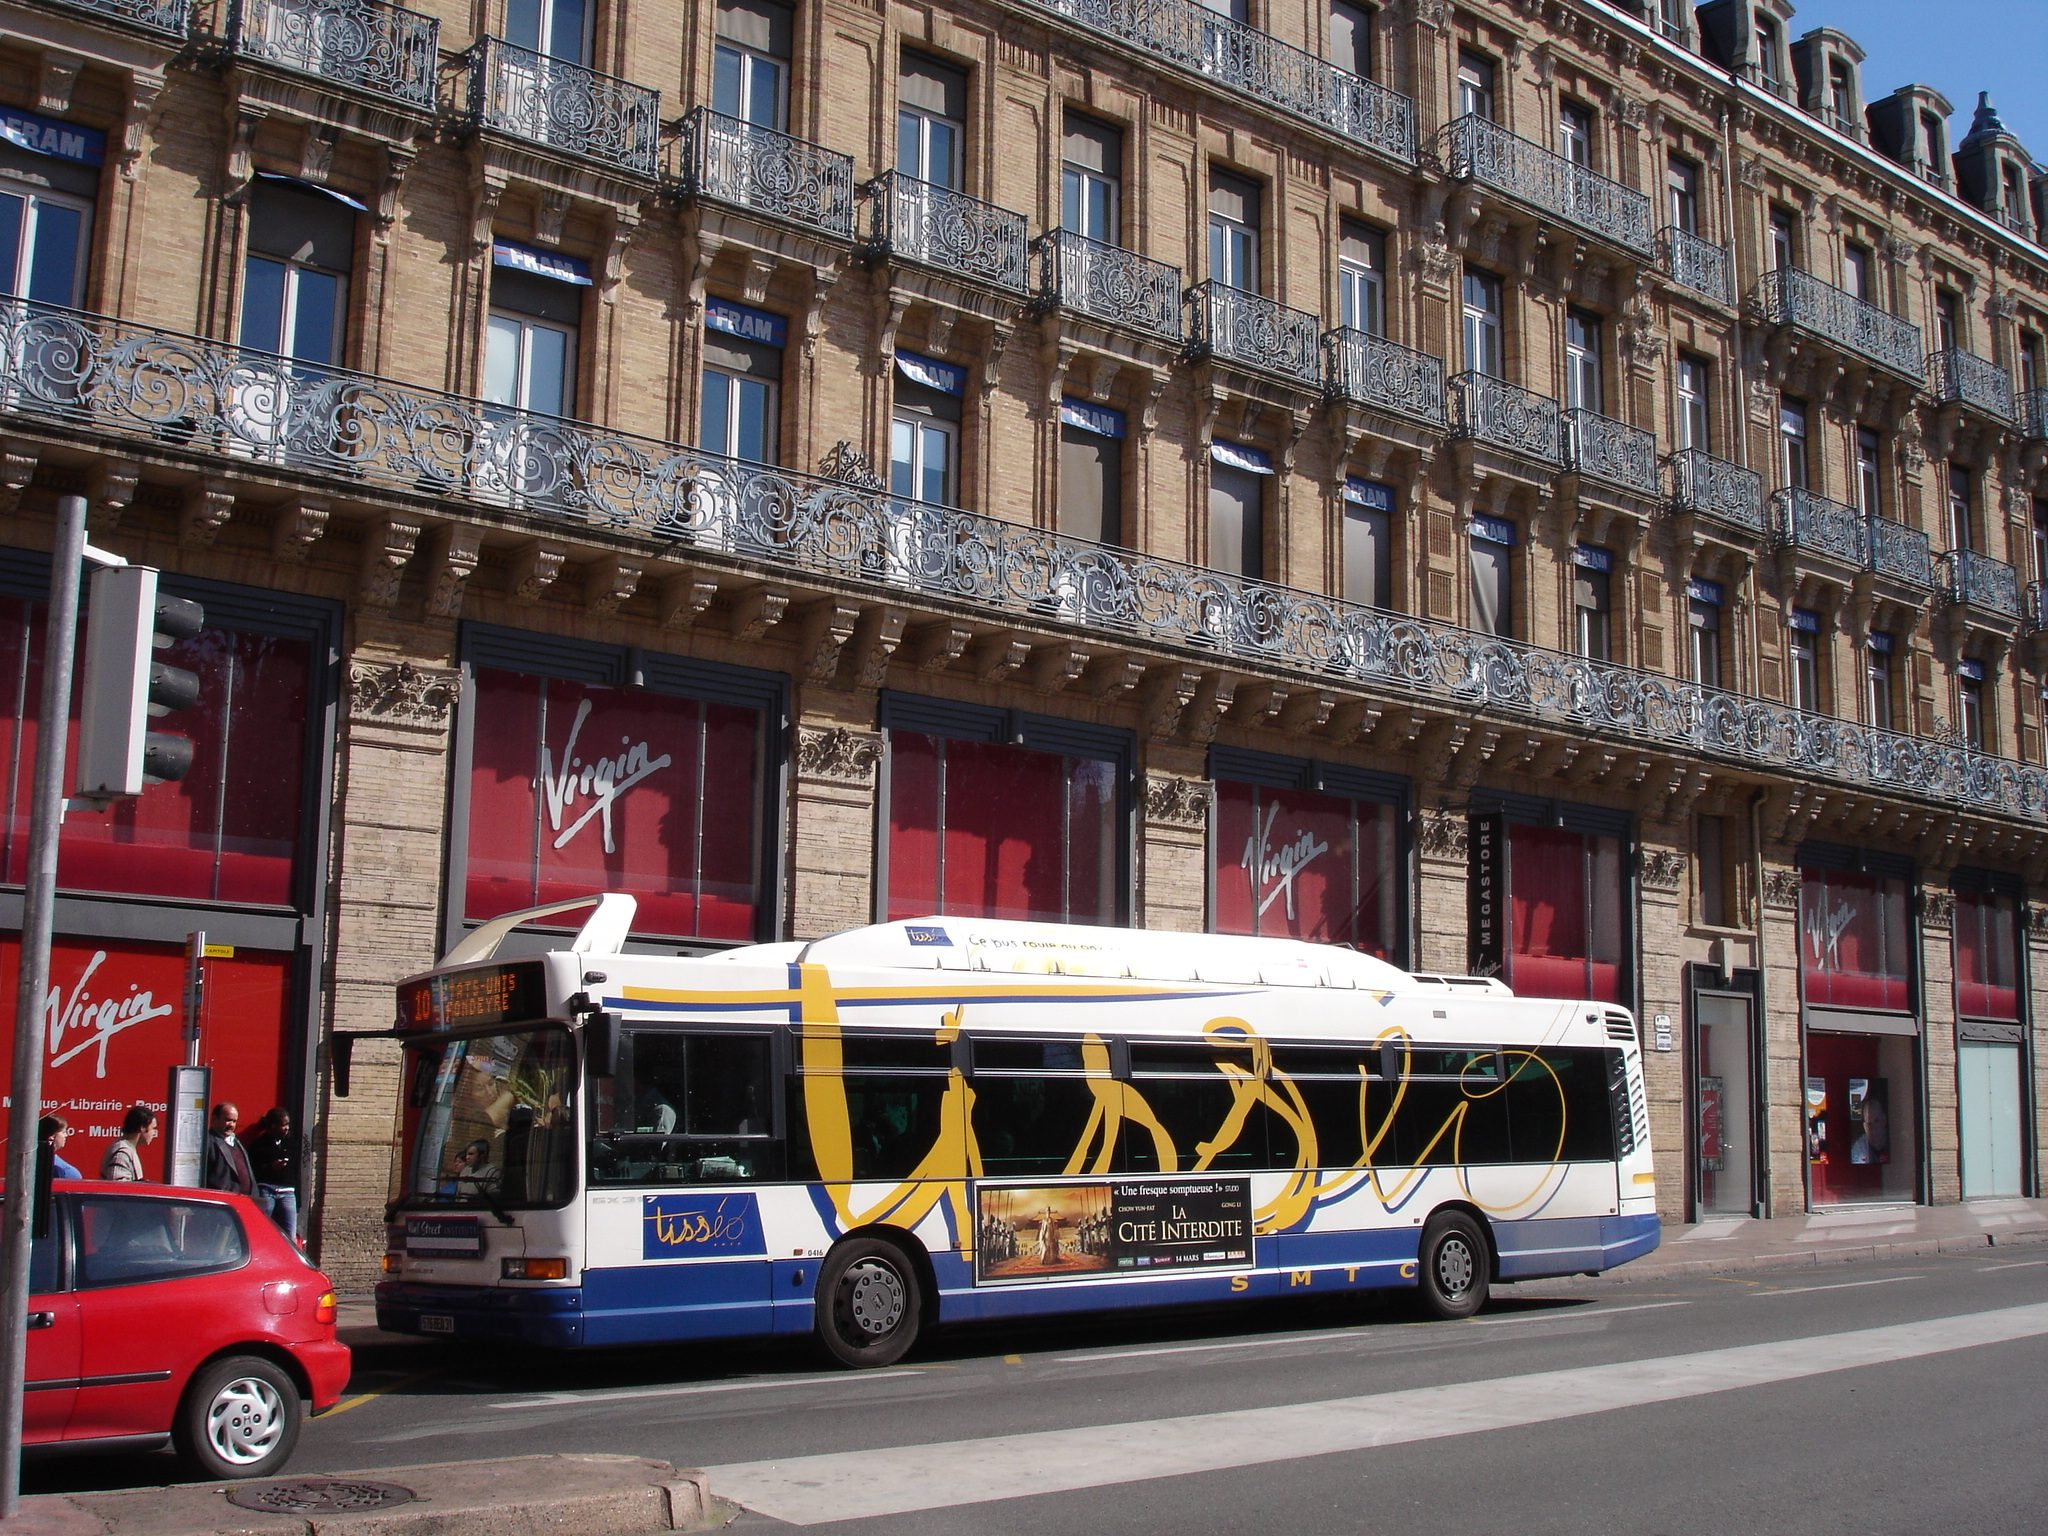 Fichier:France-Toulouse-Bus TISSEO.jpg - Wikipédia